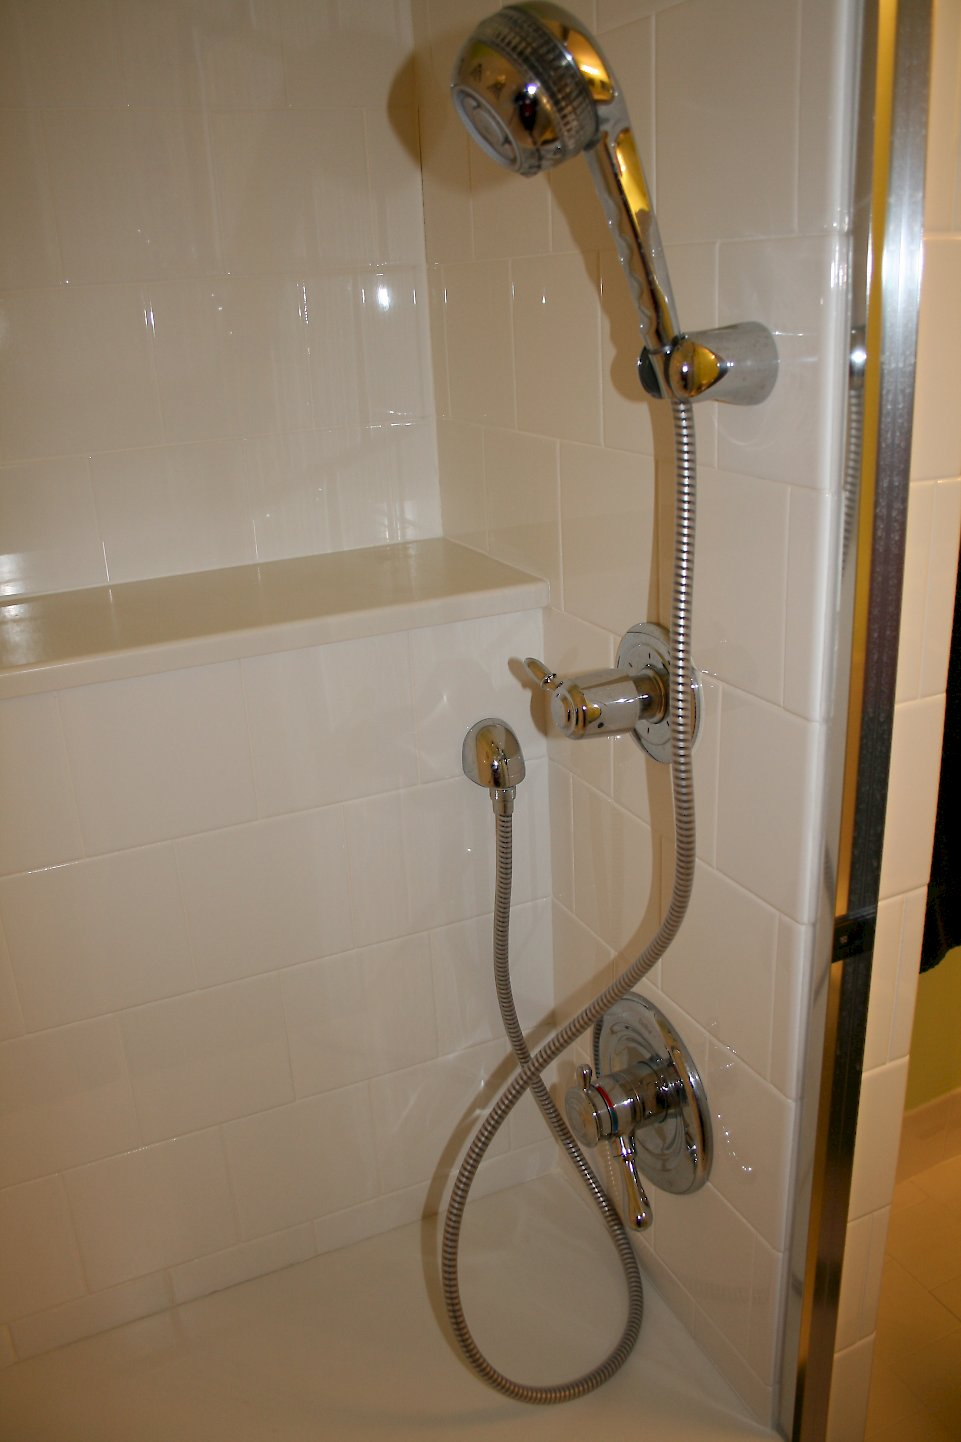 Delta wall hand shower unit.